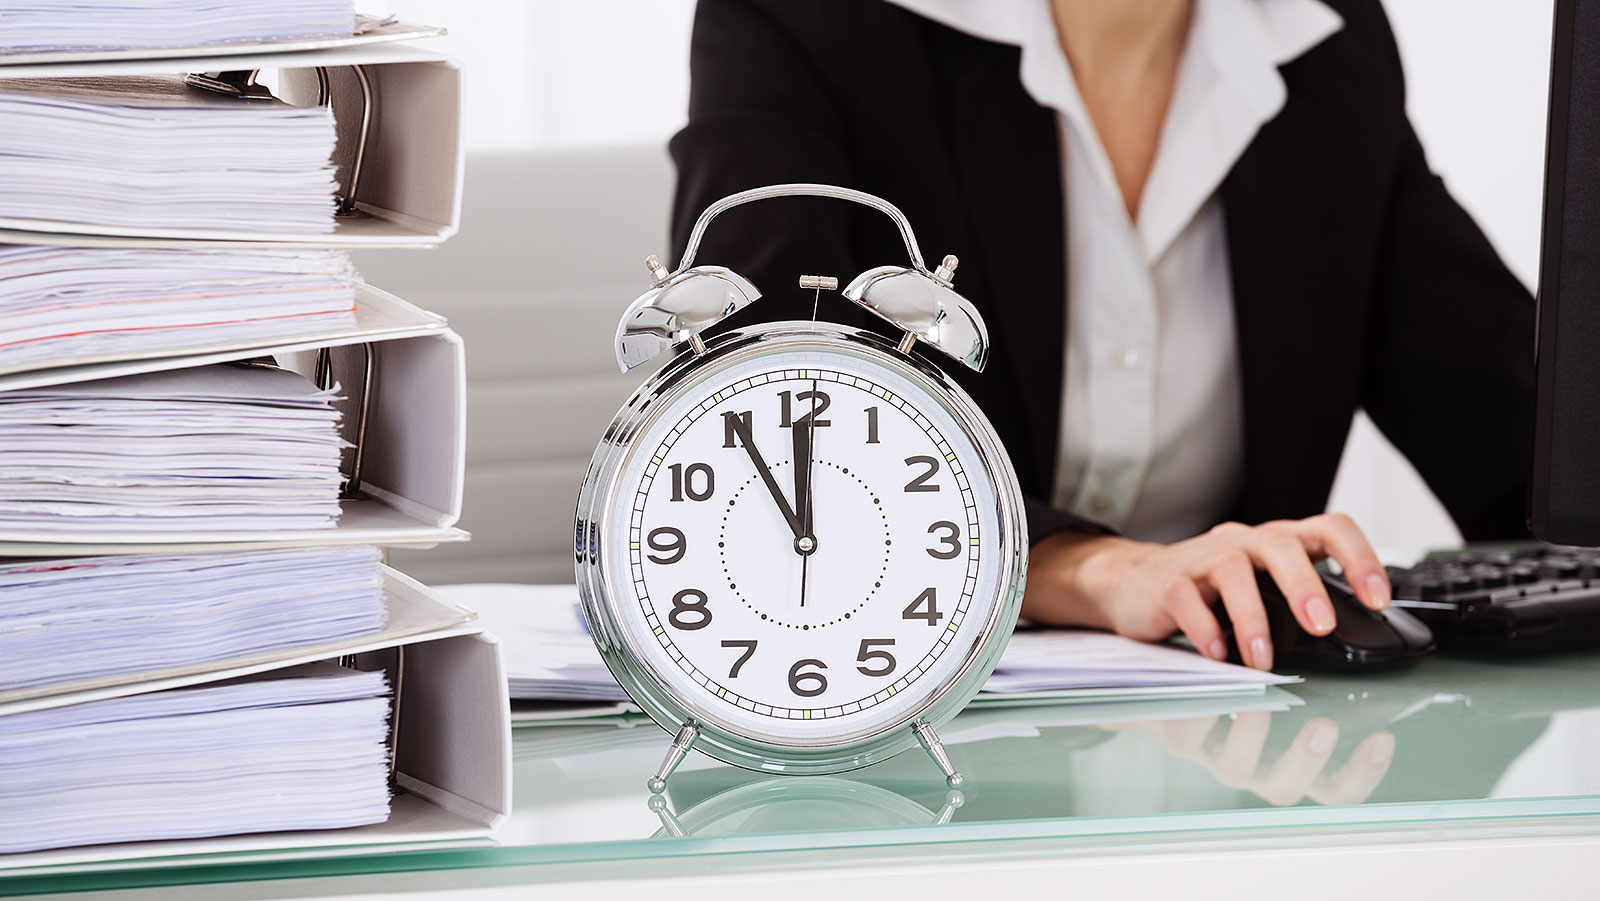 5 minutes is all you need to make your day super productive